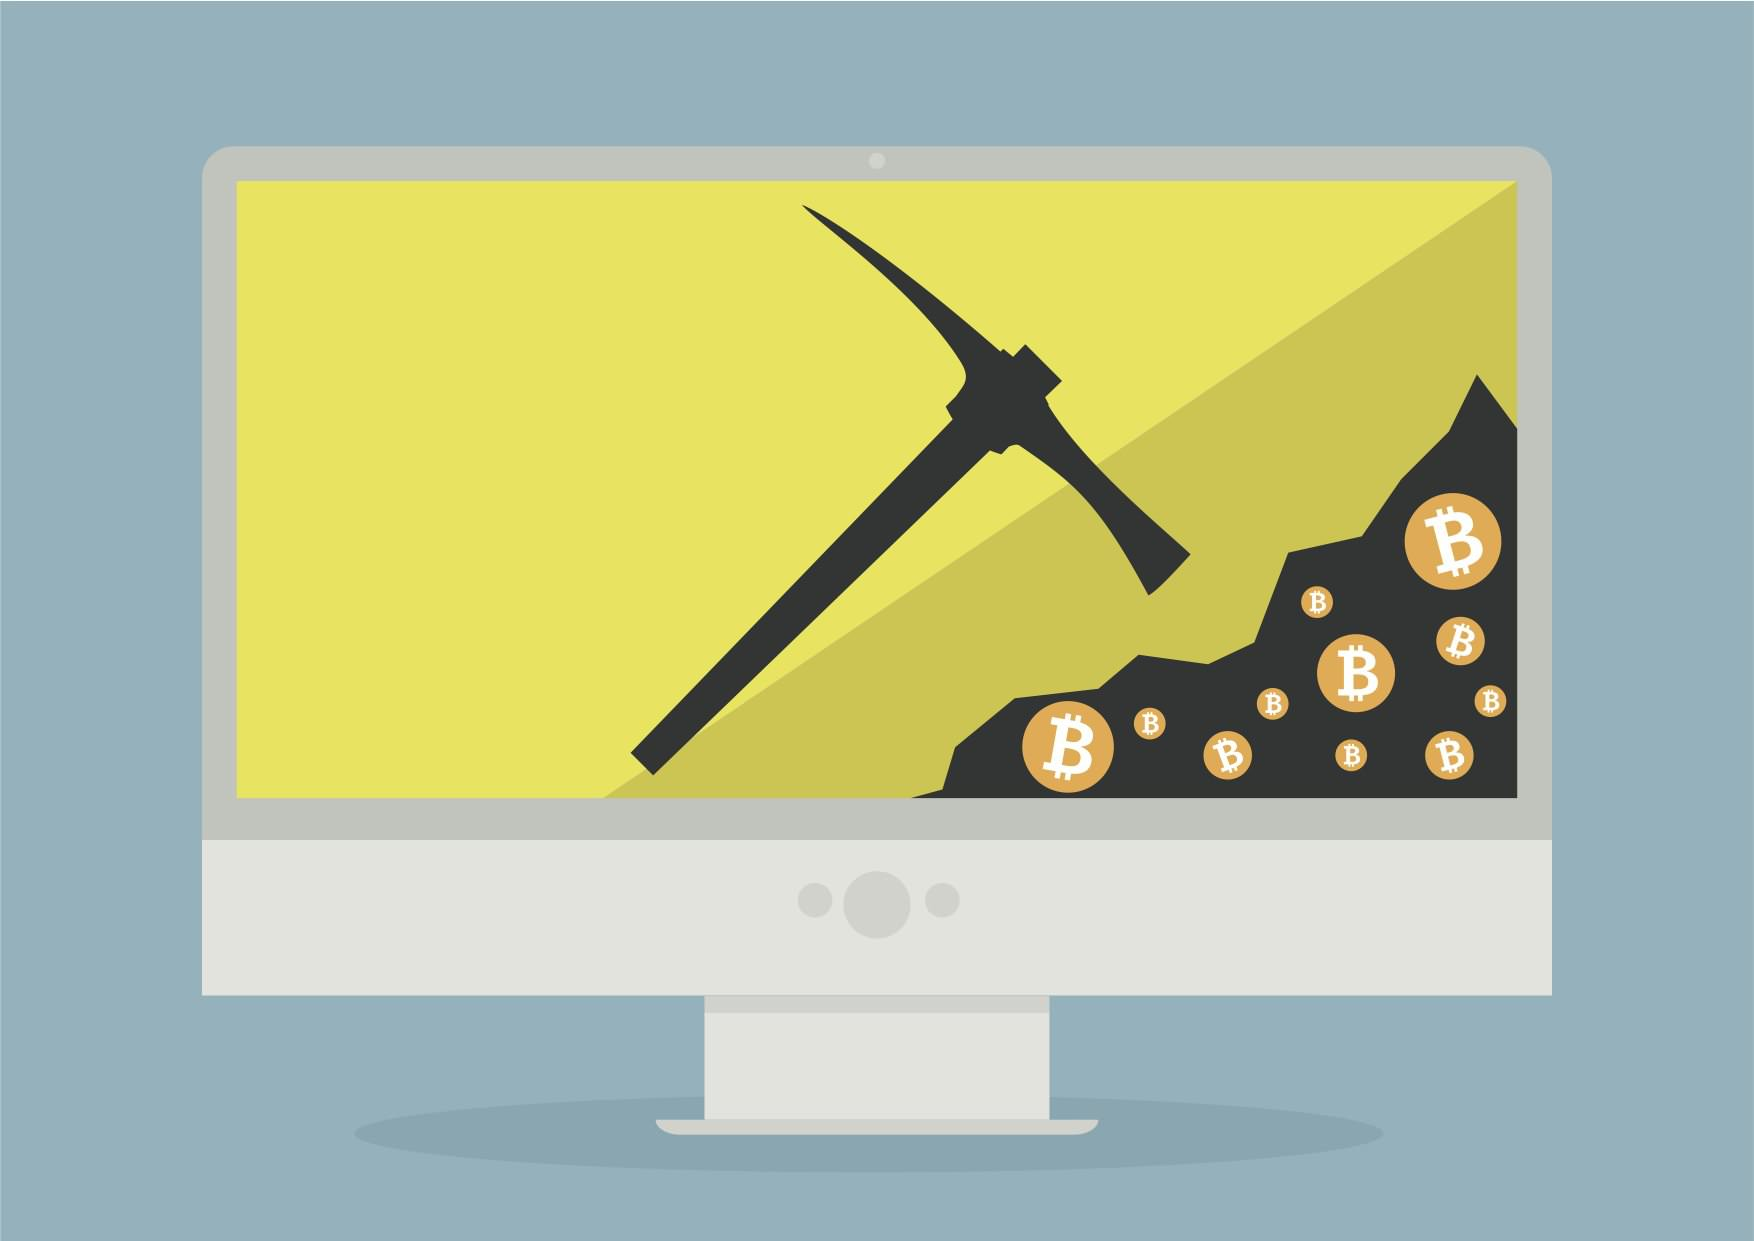 10 Best BitCoin Alternatives - Profitable Cryptocurrencies ...